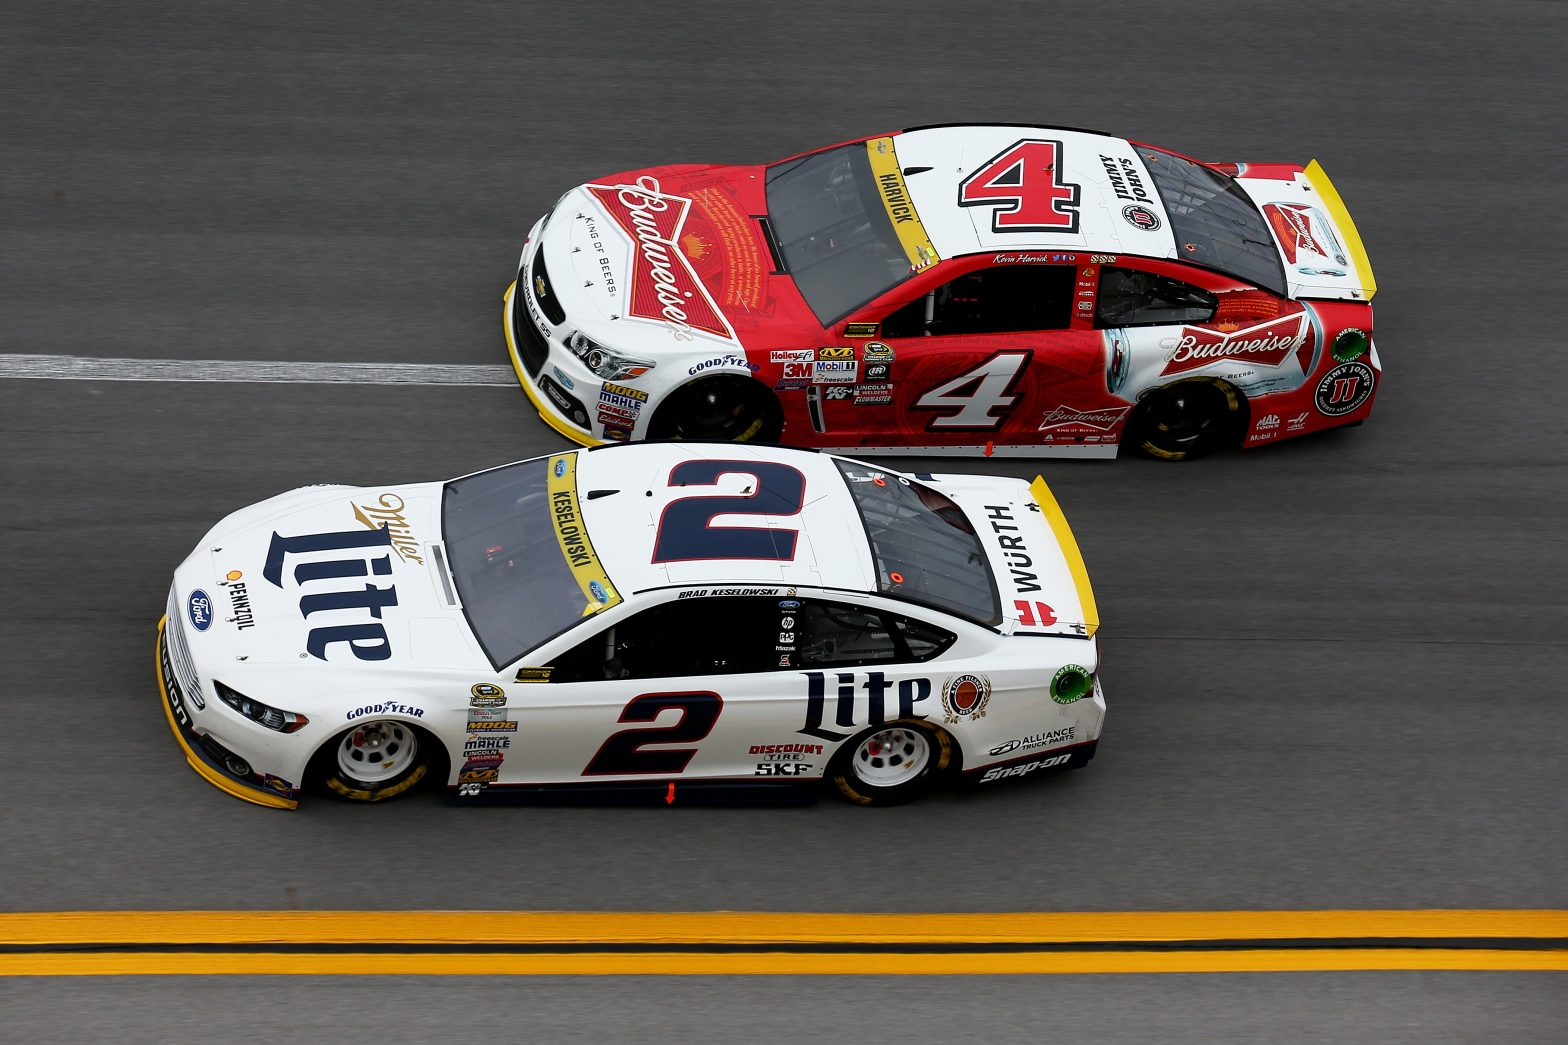 Two NASCARs sponsored by Bud and Lite